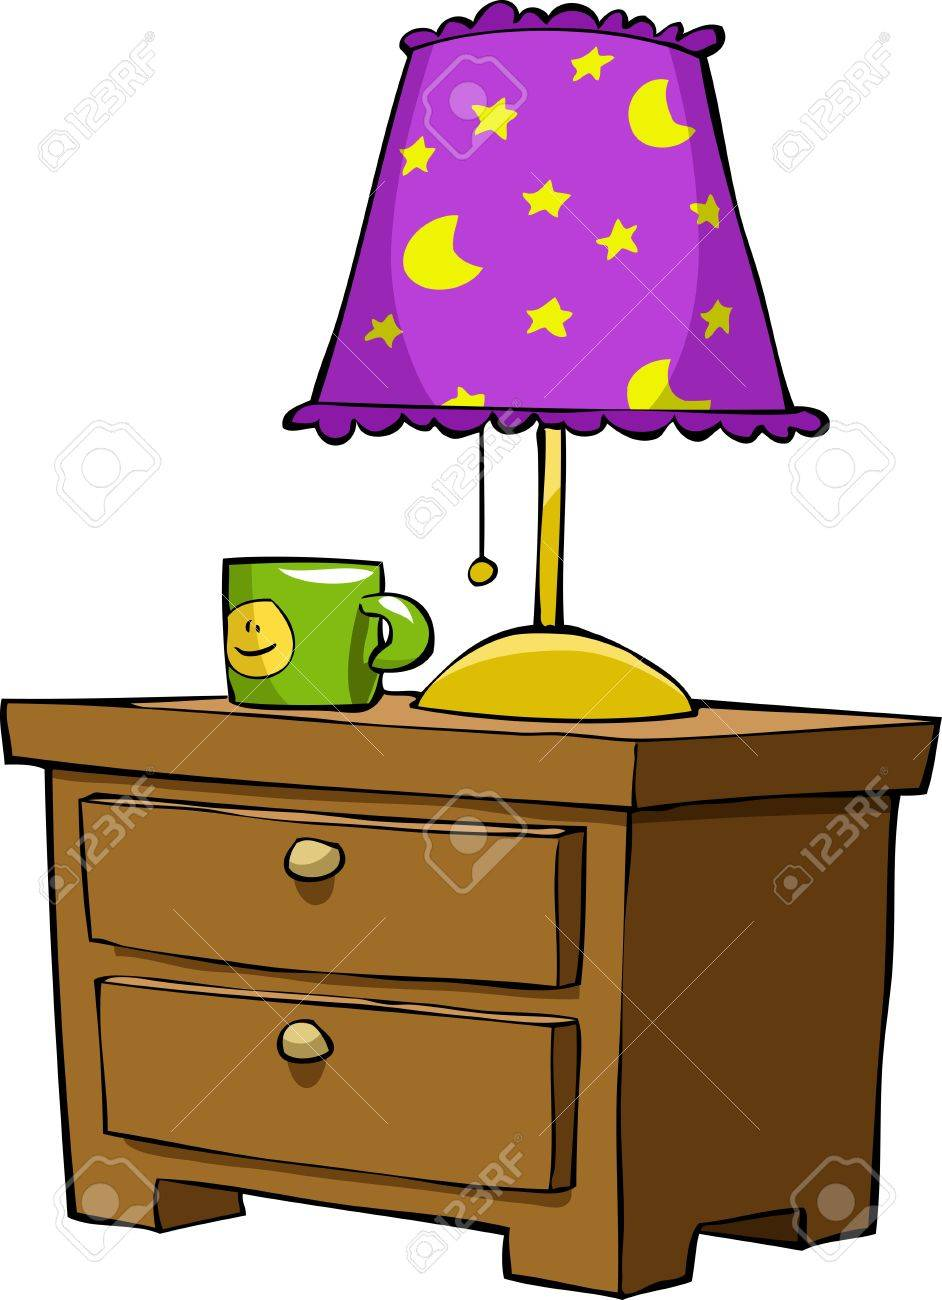 Nightstands on a white background, vector illustration Stock Vector - 12356601